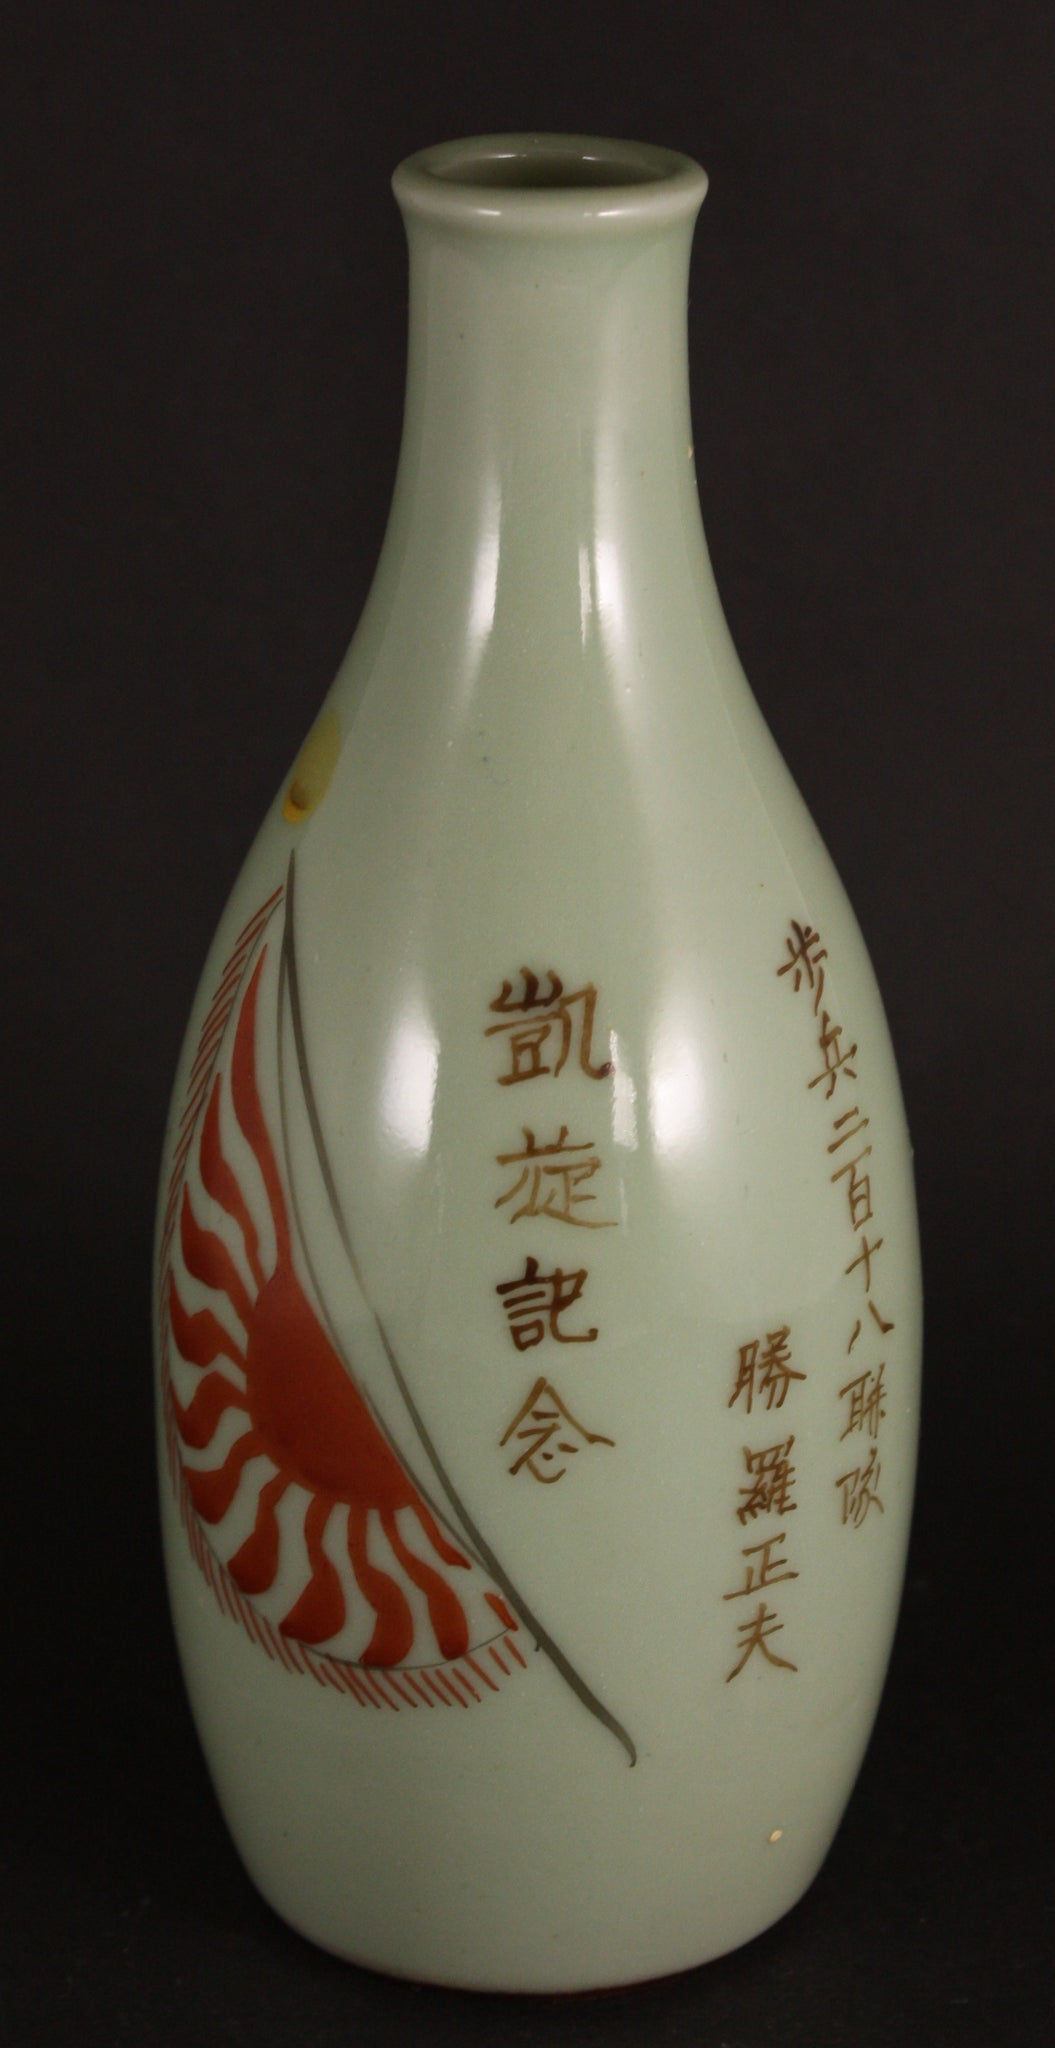 Antique Japanese Military WW2 218th Infantry Regiment Army Sake Bottle